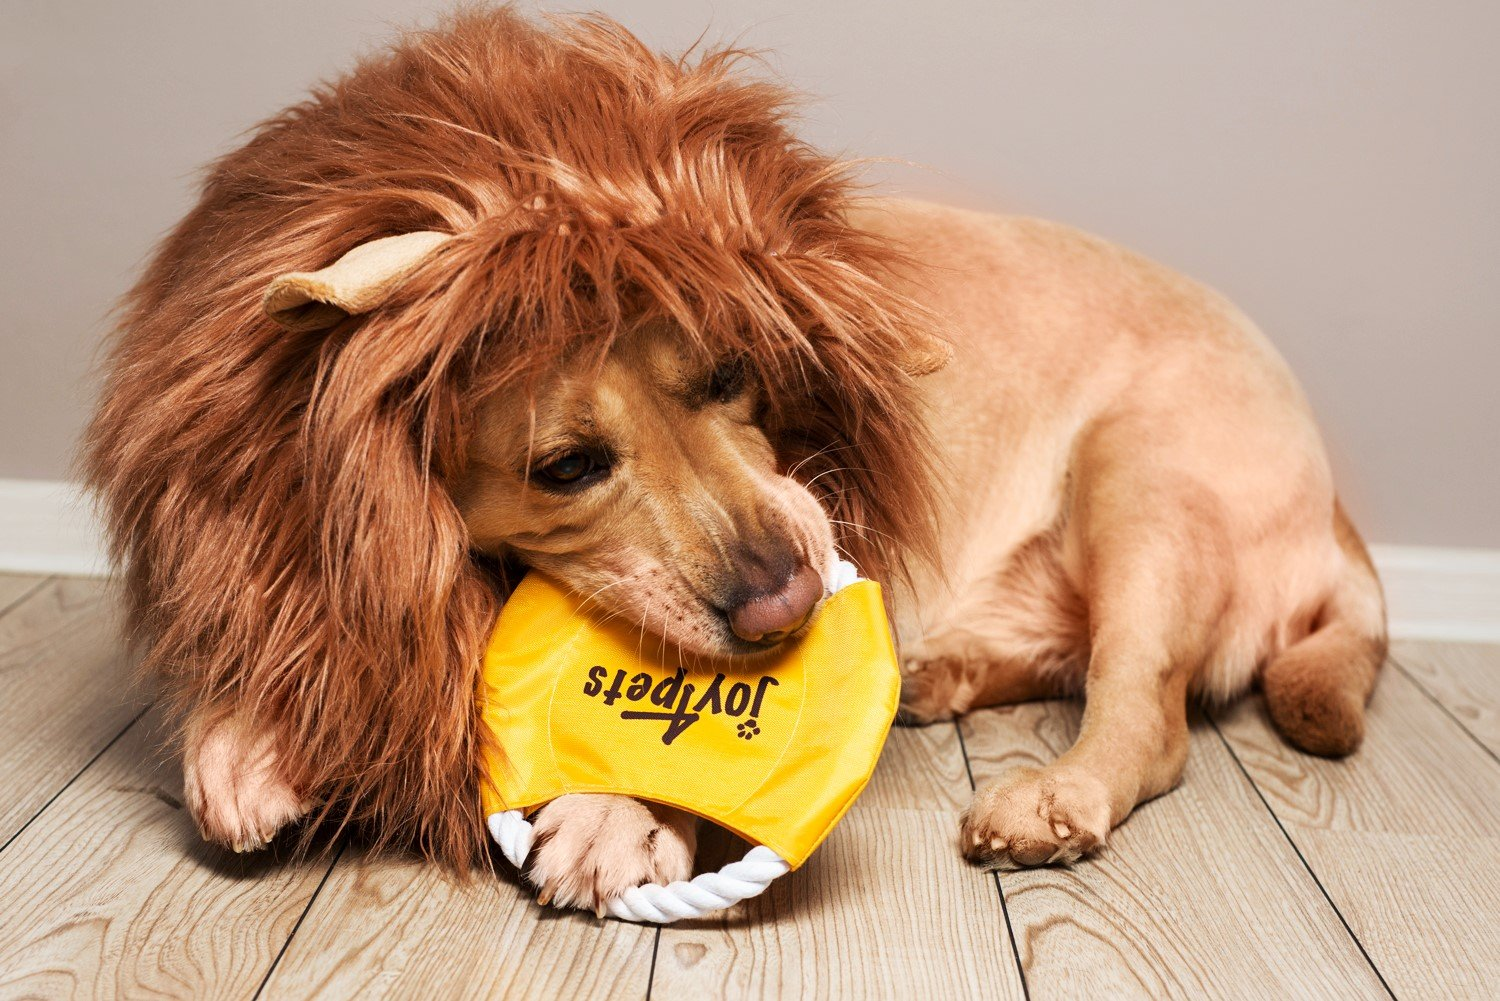 Lion Mane for Dog with Frisbee - Premium Quality, Realistic, Hilarious & Eye Catching Dog Lion Mane - Dog Costume with Ears - Comfortable Lion Wig for Medium and Large Dogs - Perfect Dog Gift by Joy4Pets (Image #4)